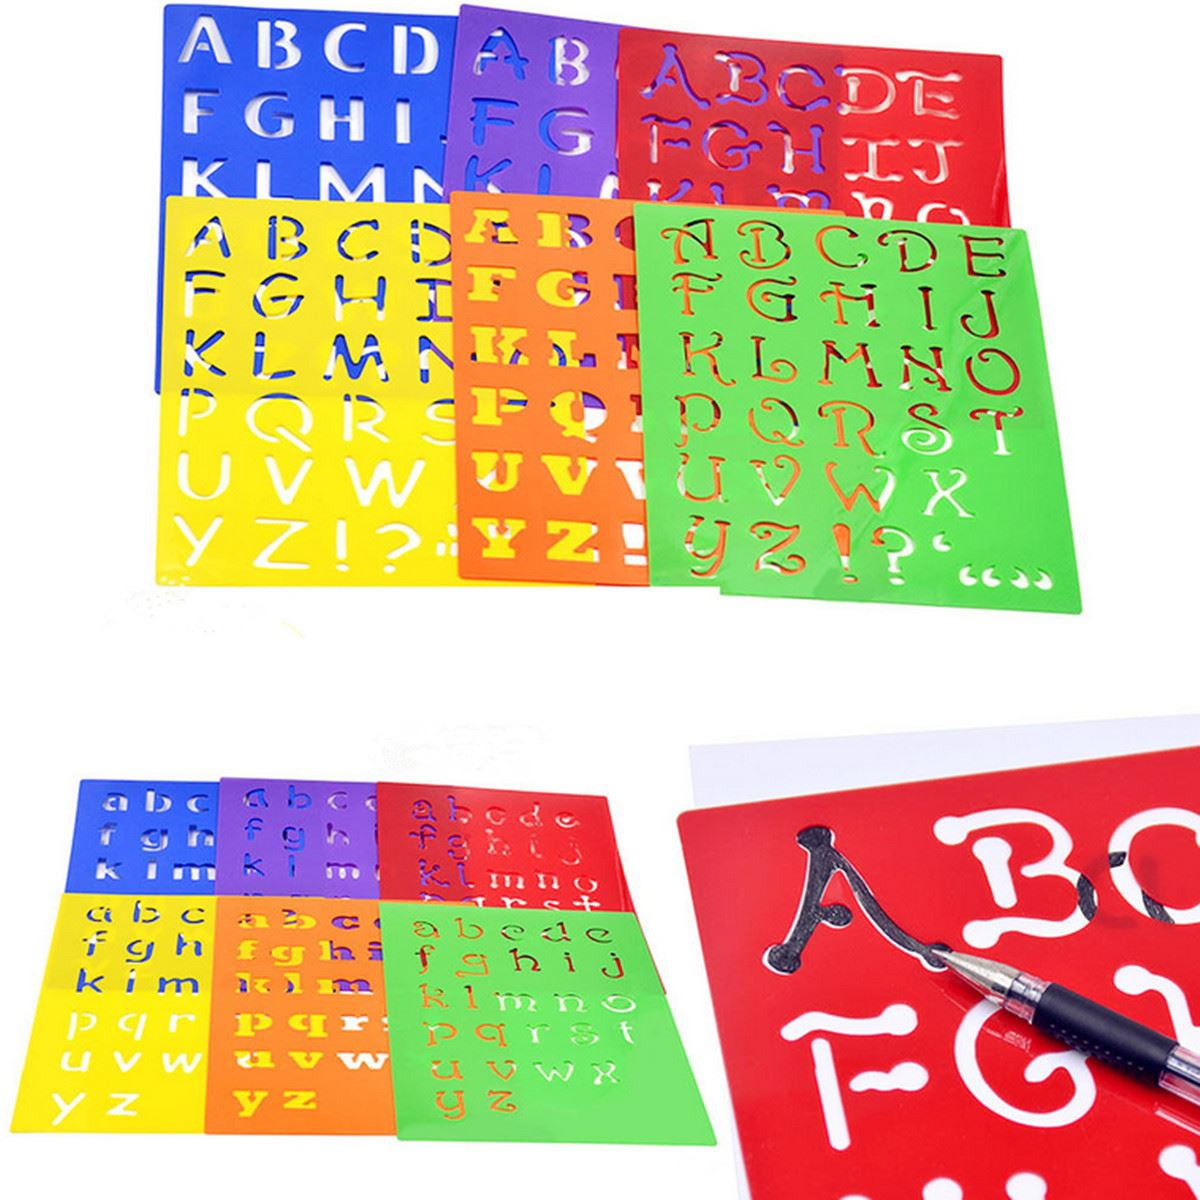 aliexpresscom buy kids capitall alphabet letter drawing templates 6pcs washable stencils children educational toys plastic painting drawing toys from - Kids Drawing Stencils